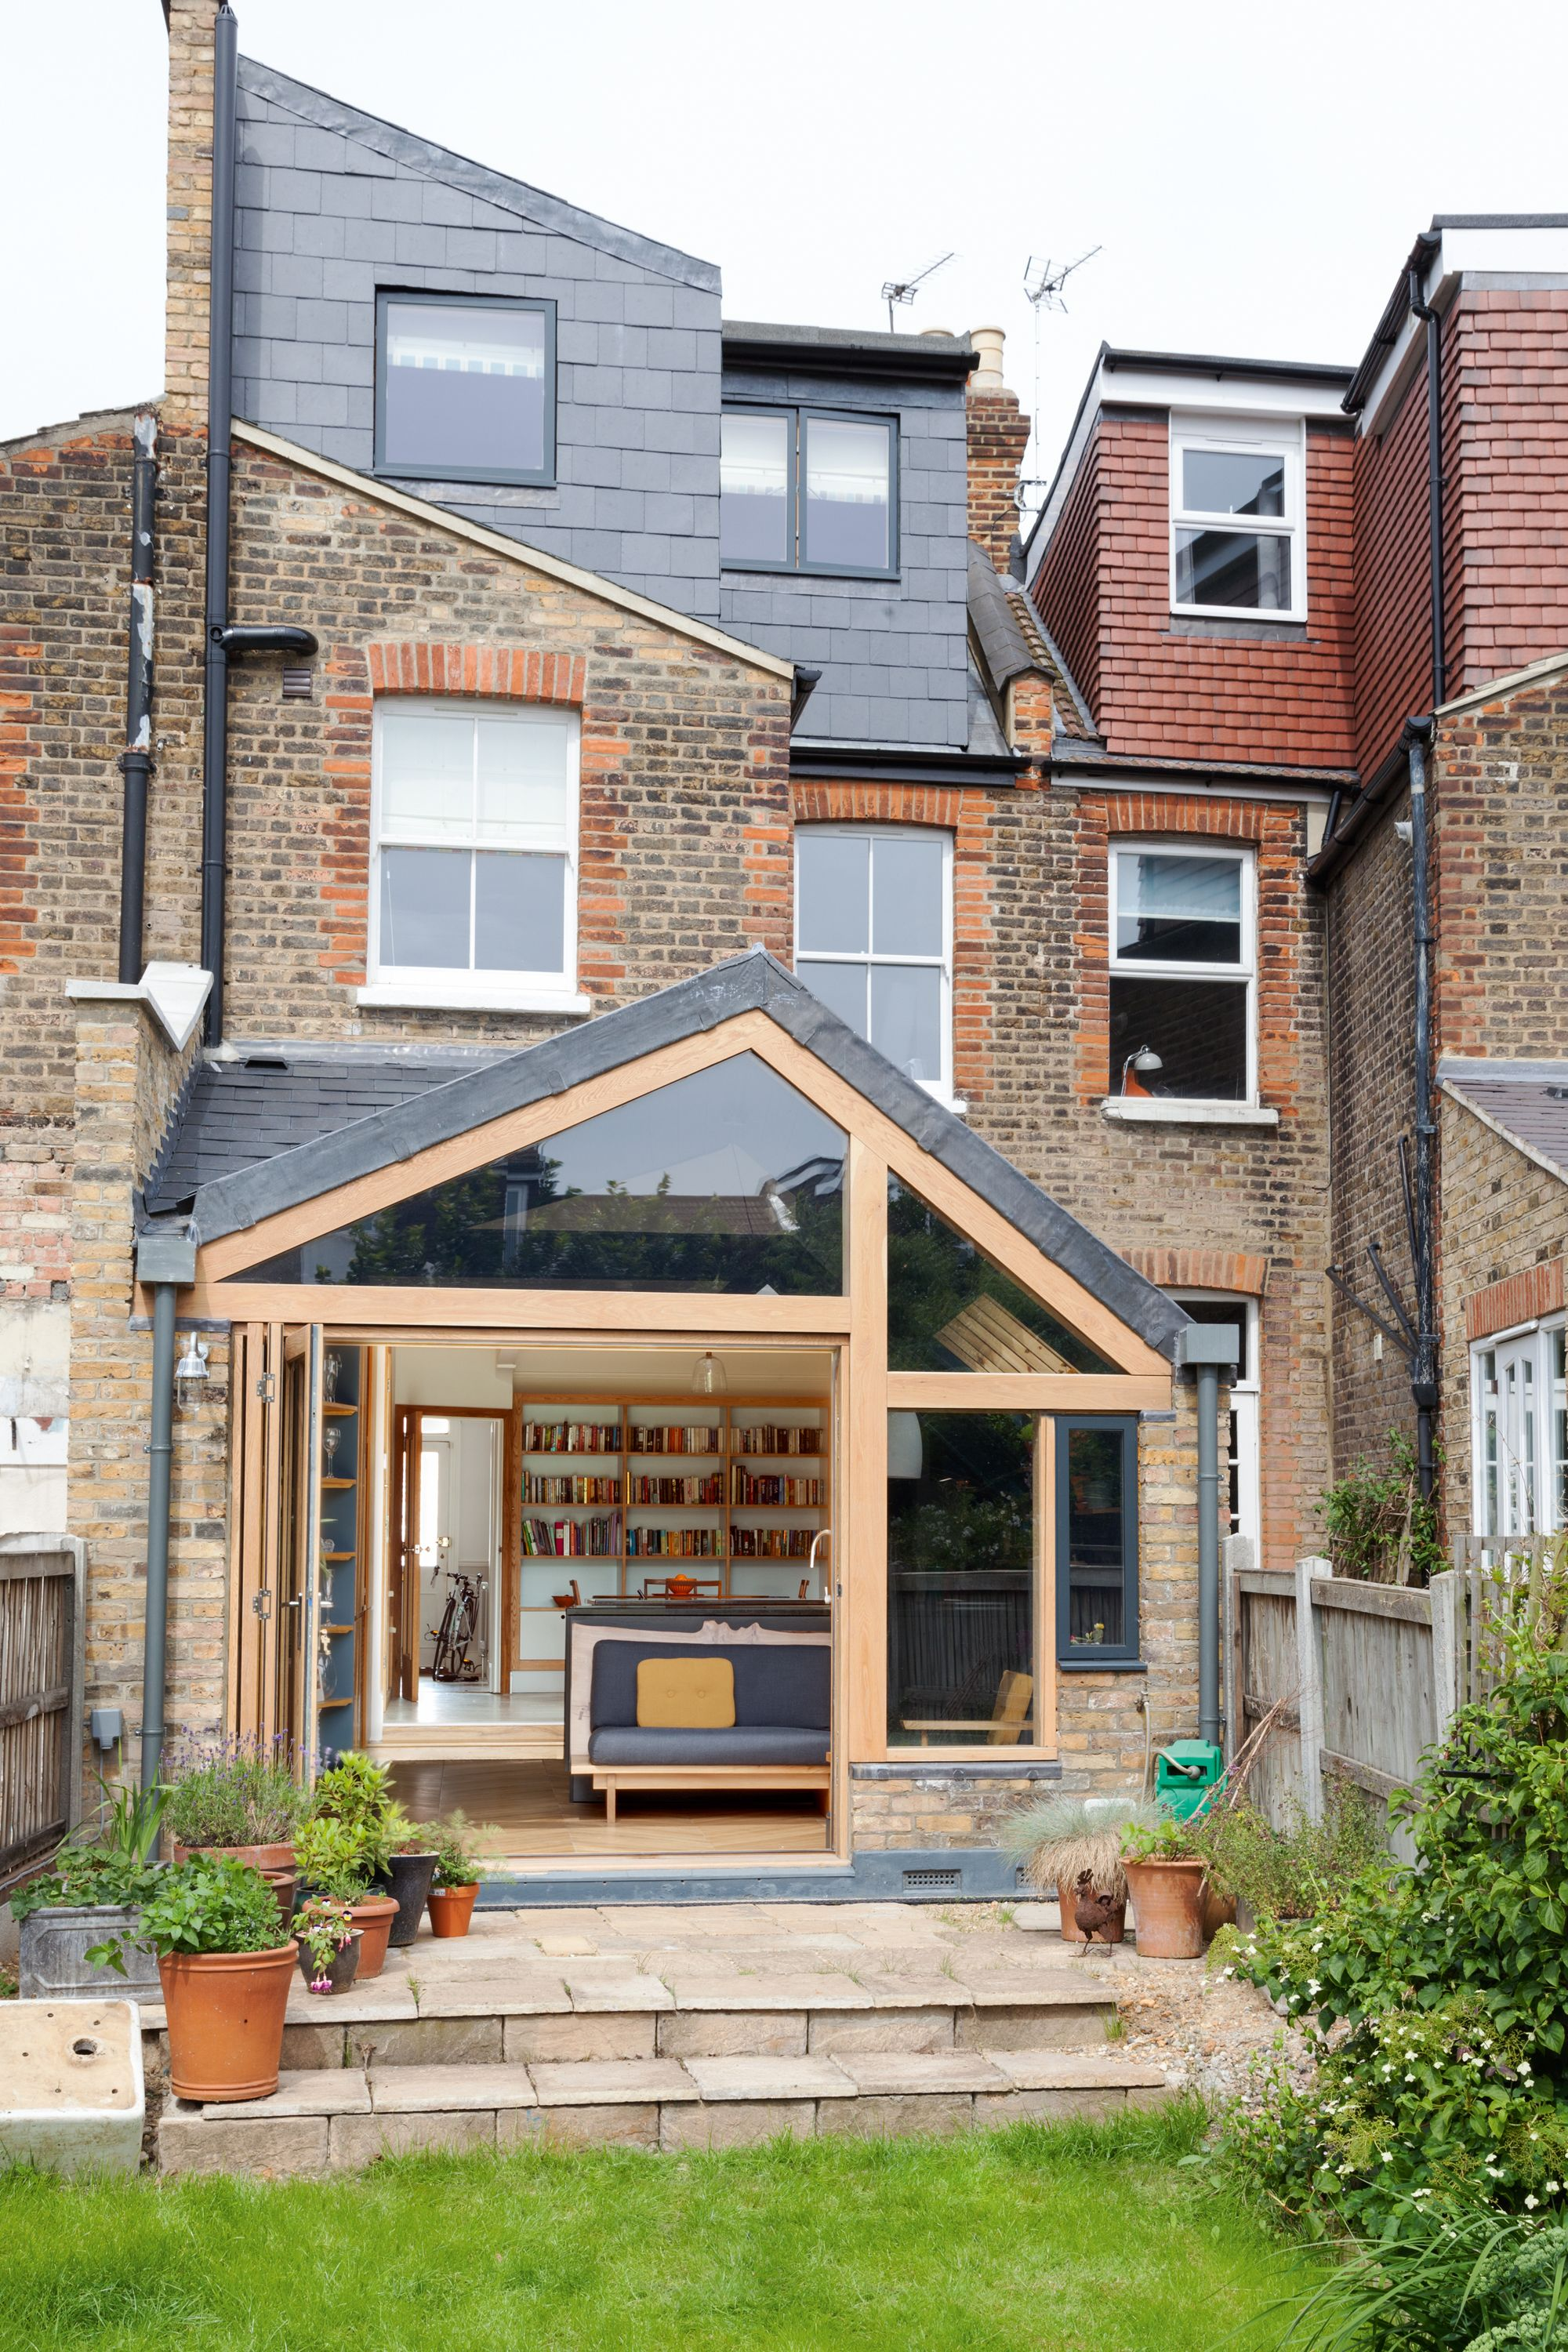 Real Home A Tailor Made Retro Kitchen Extension House Extension Design House Extensions Garden Room Extensions